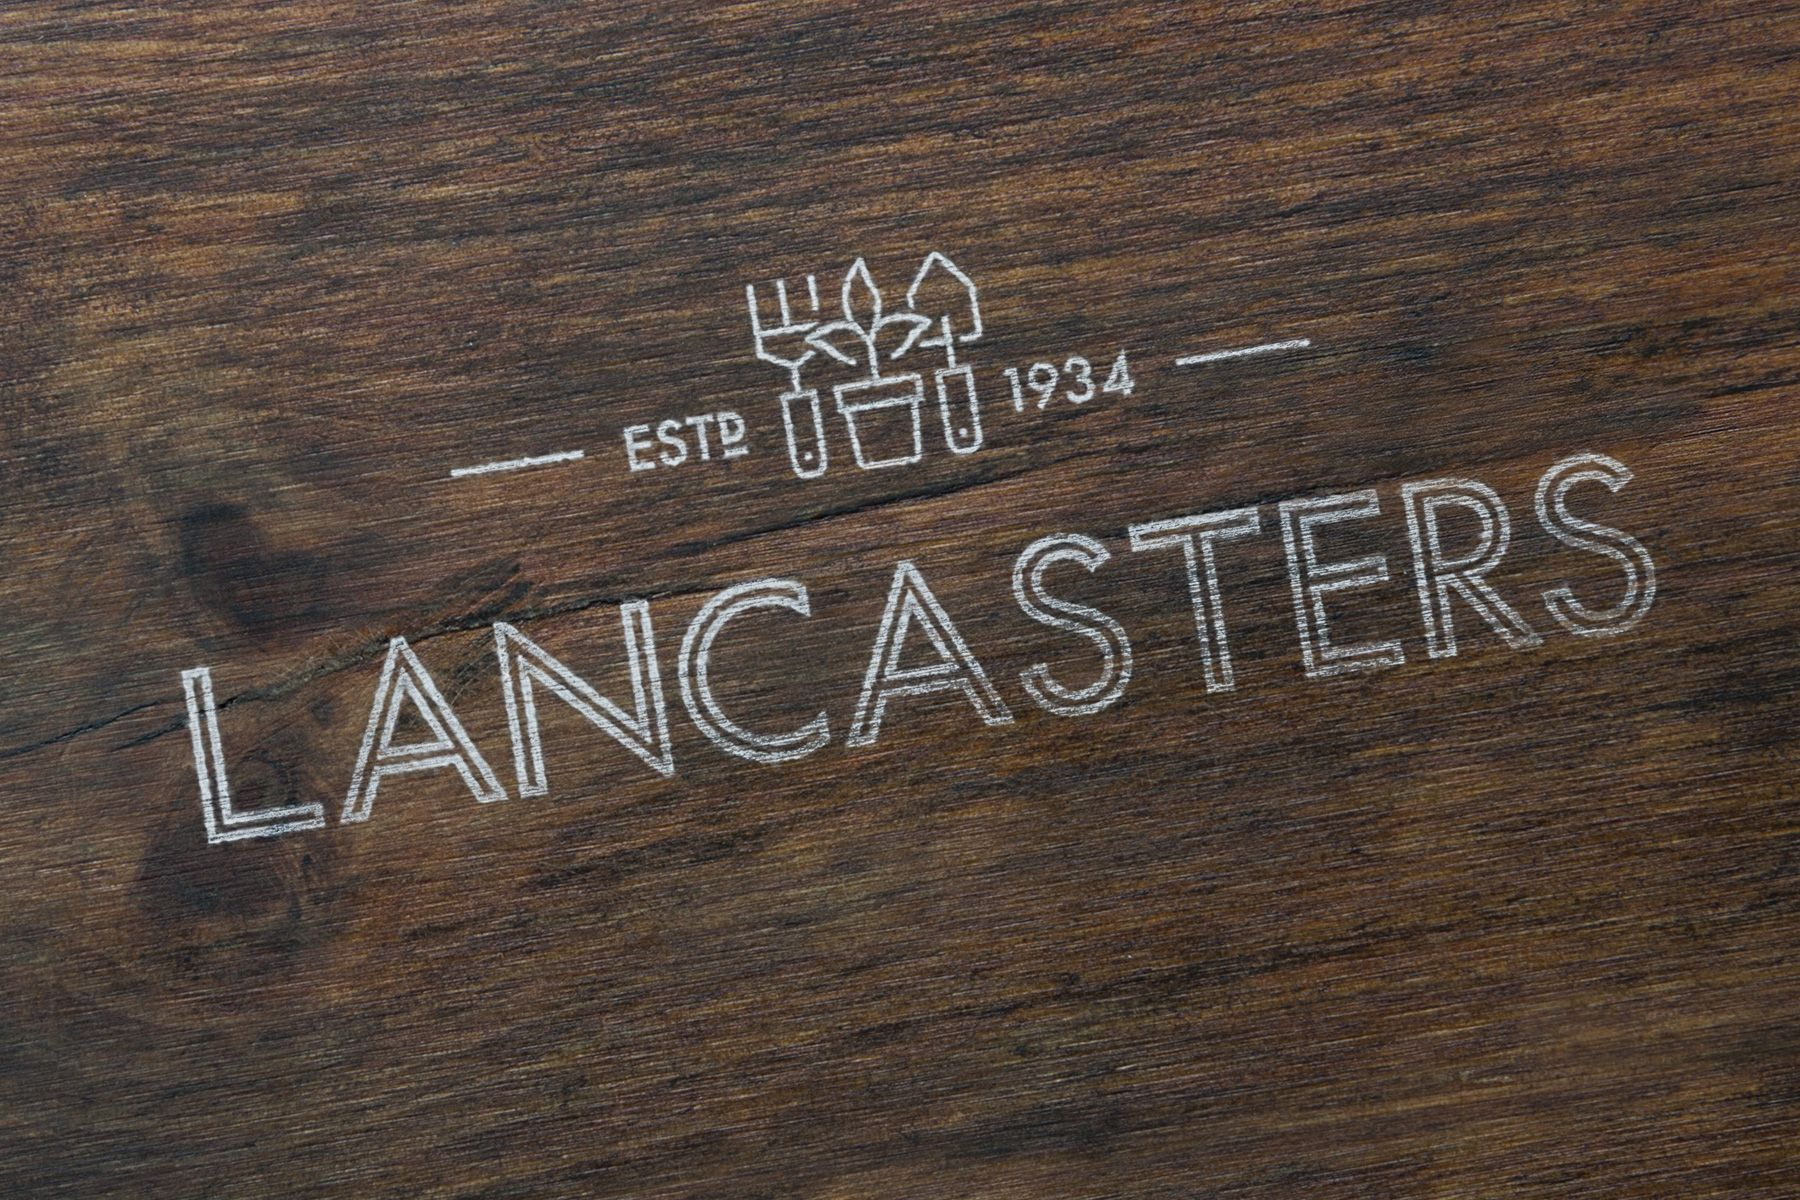 Lancasters – Shifting notions of what a garden centre should be